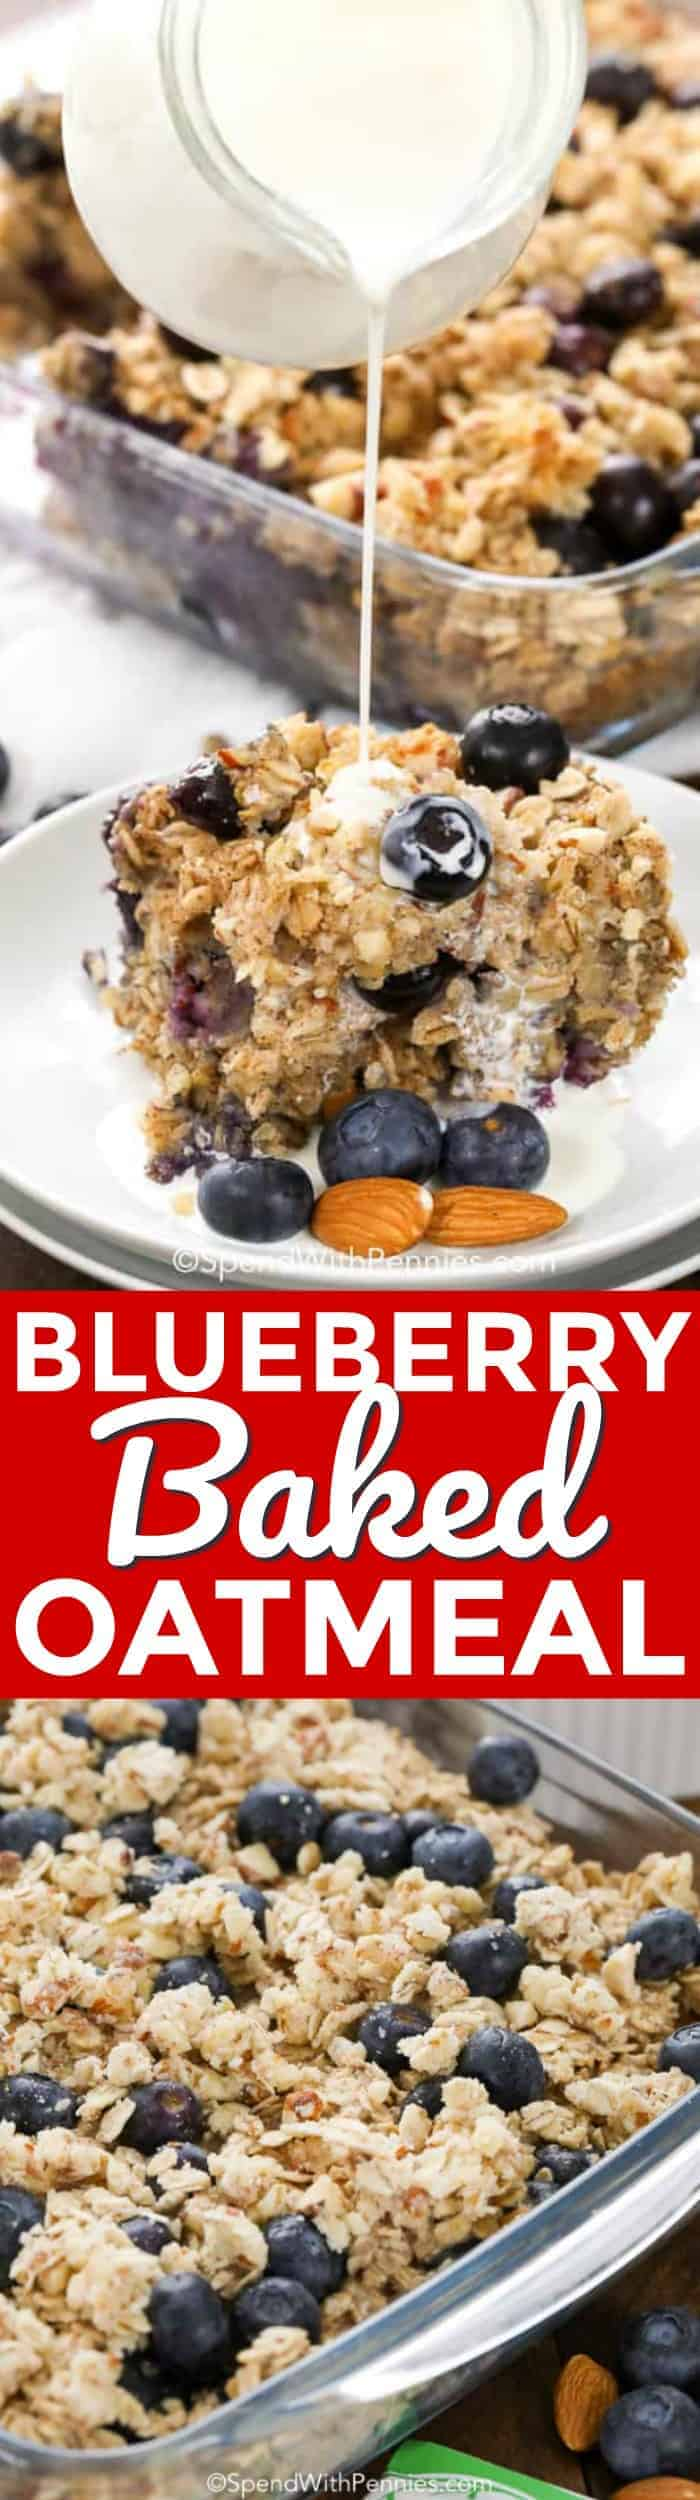 Baked Oatmeal is a delicious and easy way to start your day! The goodness of oats combined with juicy blueberries and protein packed almonds all lightly sweetened and baked into a delicious family favorite breakfast! #spendwithpennies #easyrecipe #blueberries #familyfavorite #breakfast